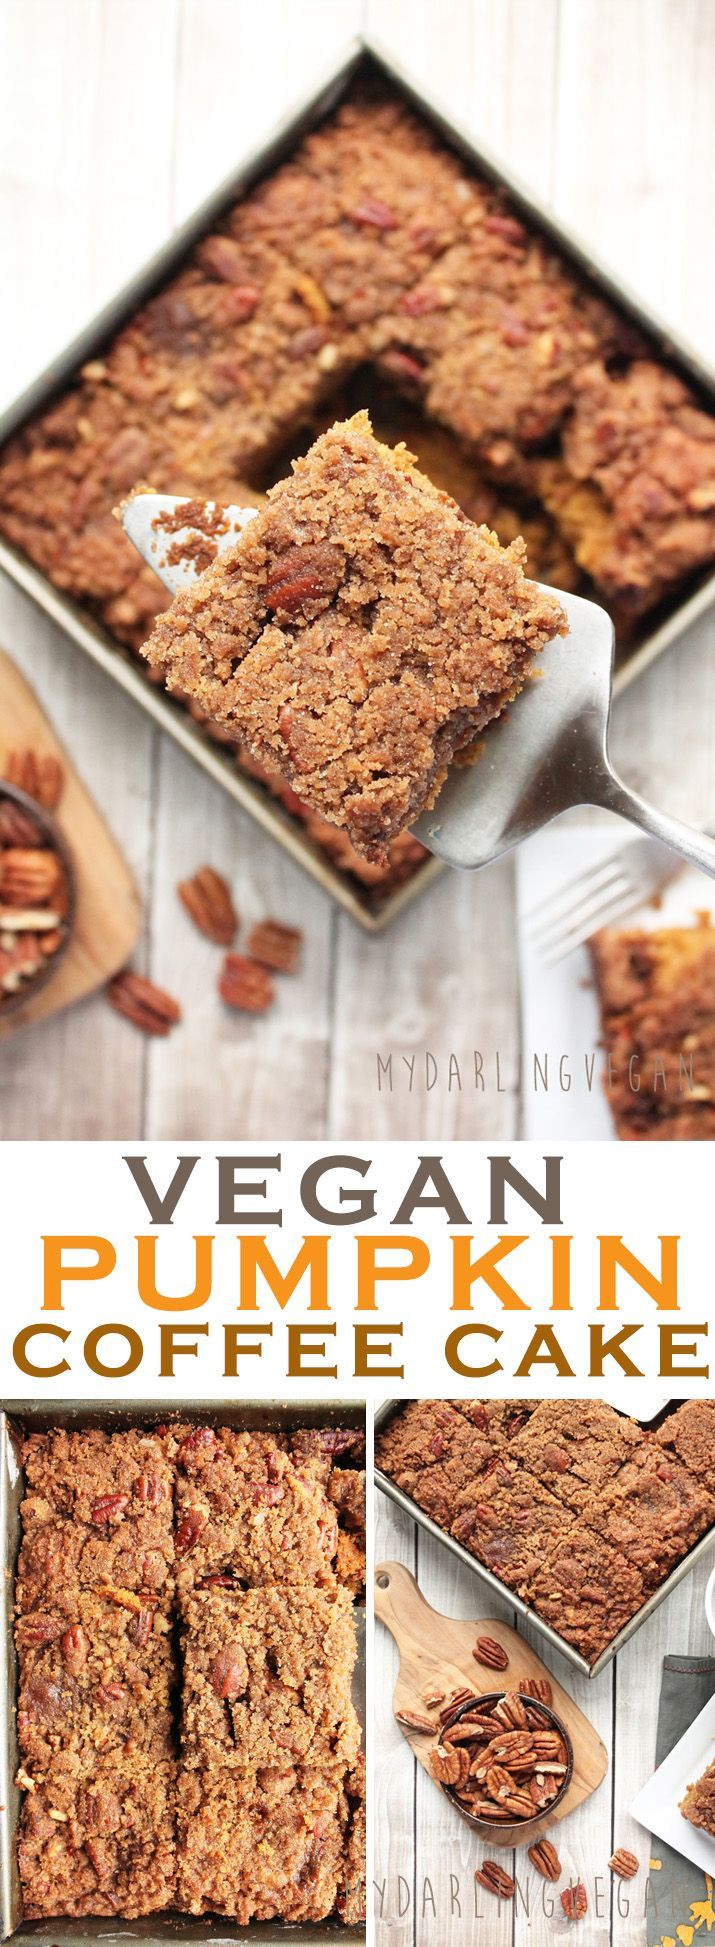 Get out of bed on these chilly October days with this decadent vegan Pumpkin Coffee Cake. Click the photo for the recipe.